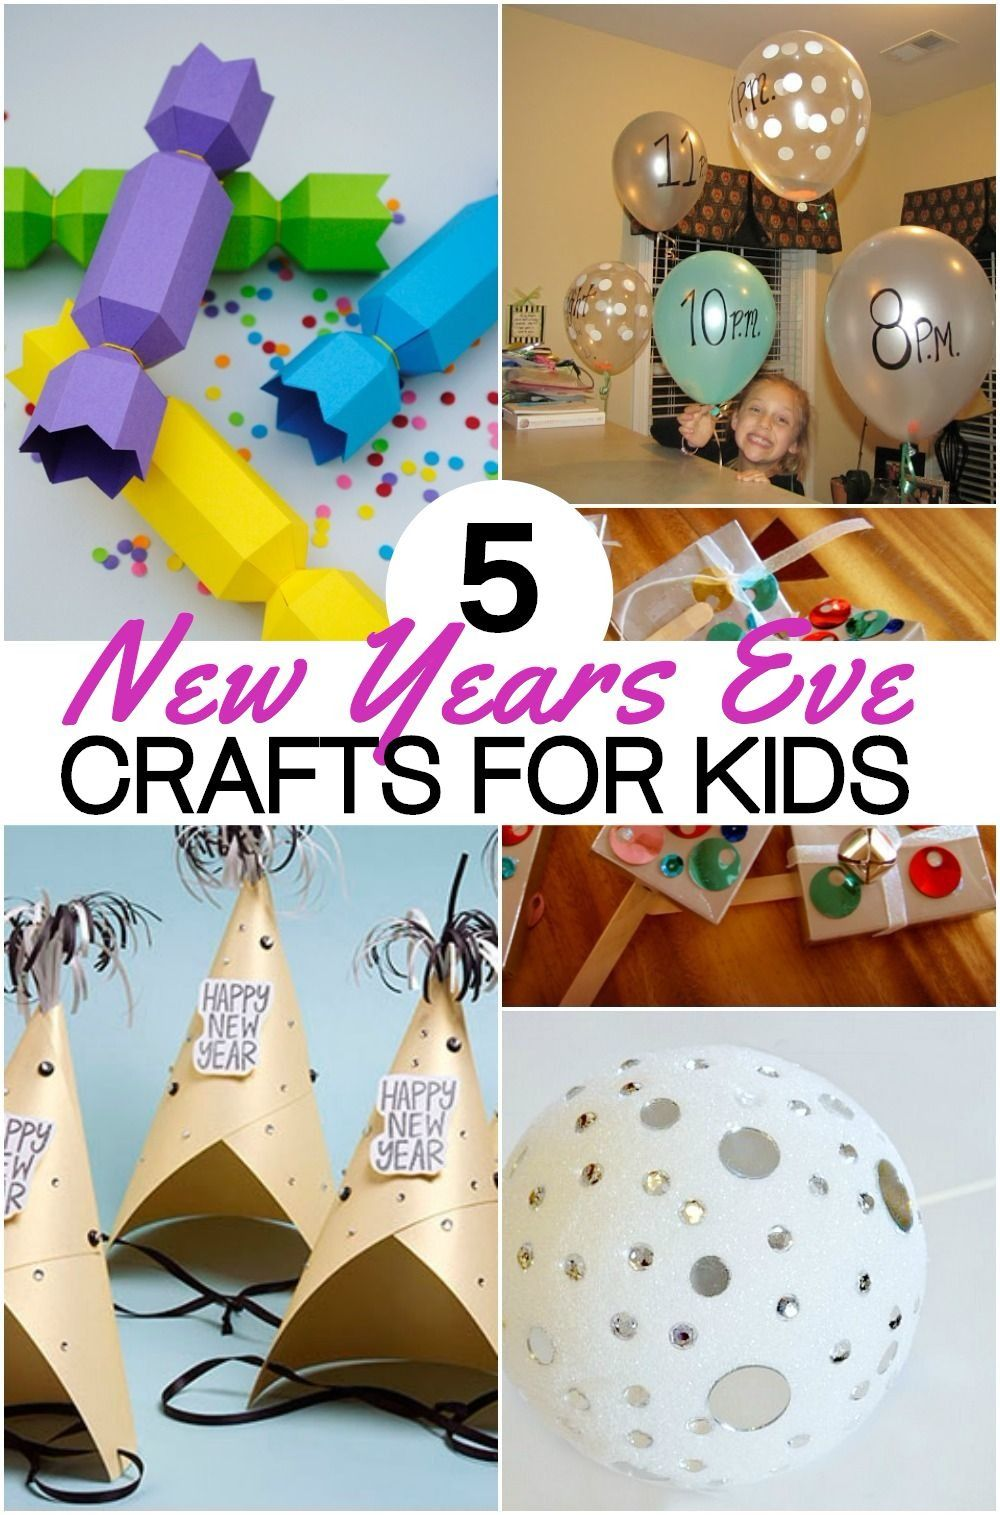 5 Fun New Years Eve Crafts For Kids To Ring In The New Year New Year S Eve Crafts Crafts For Kids Kids New Years Eve